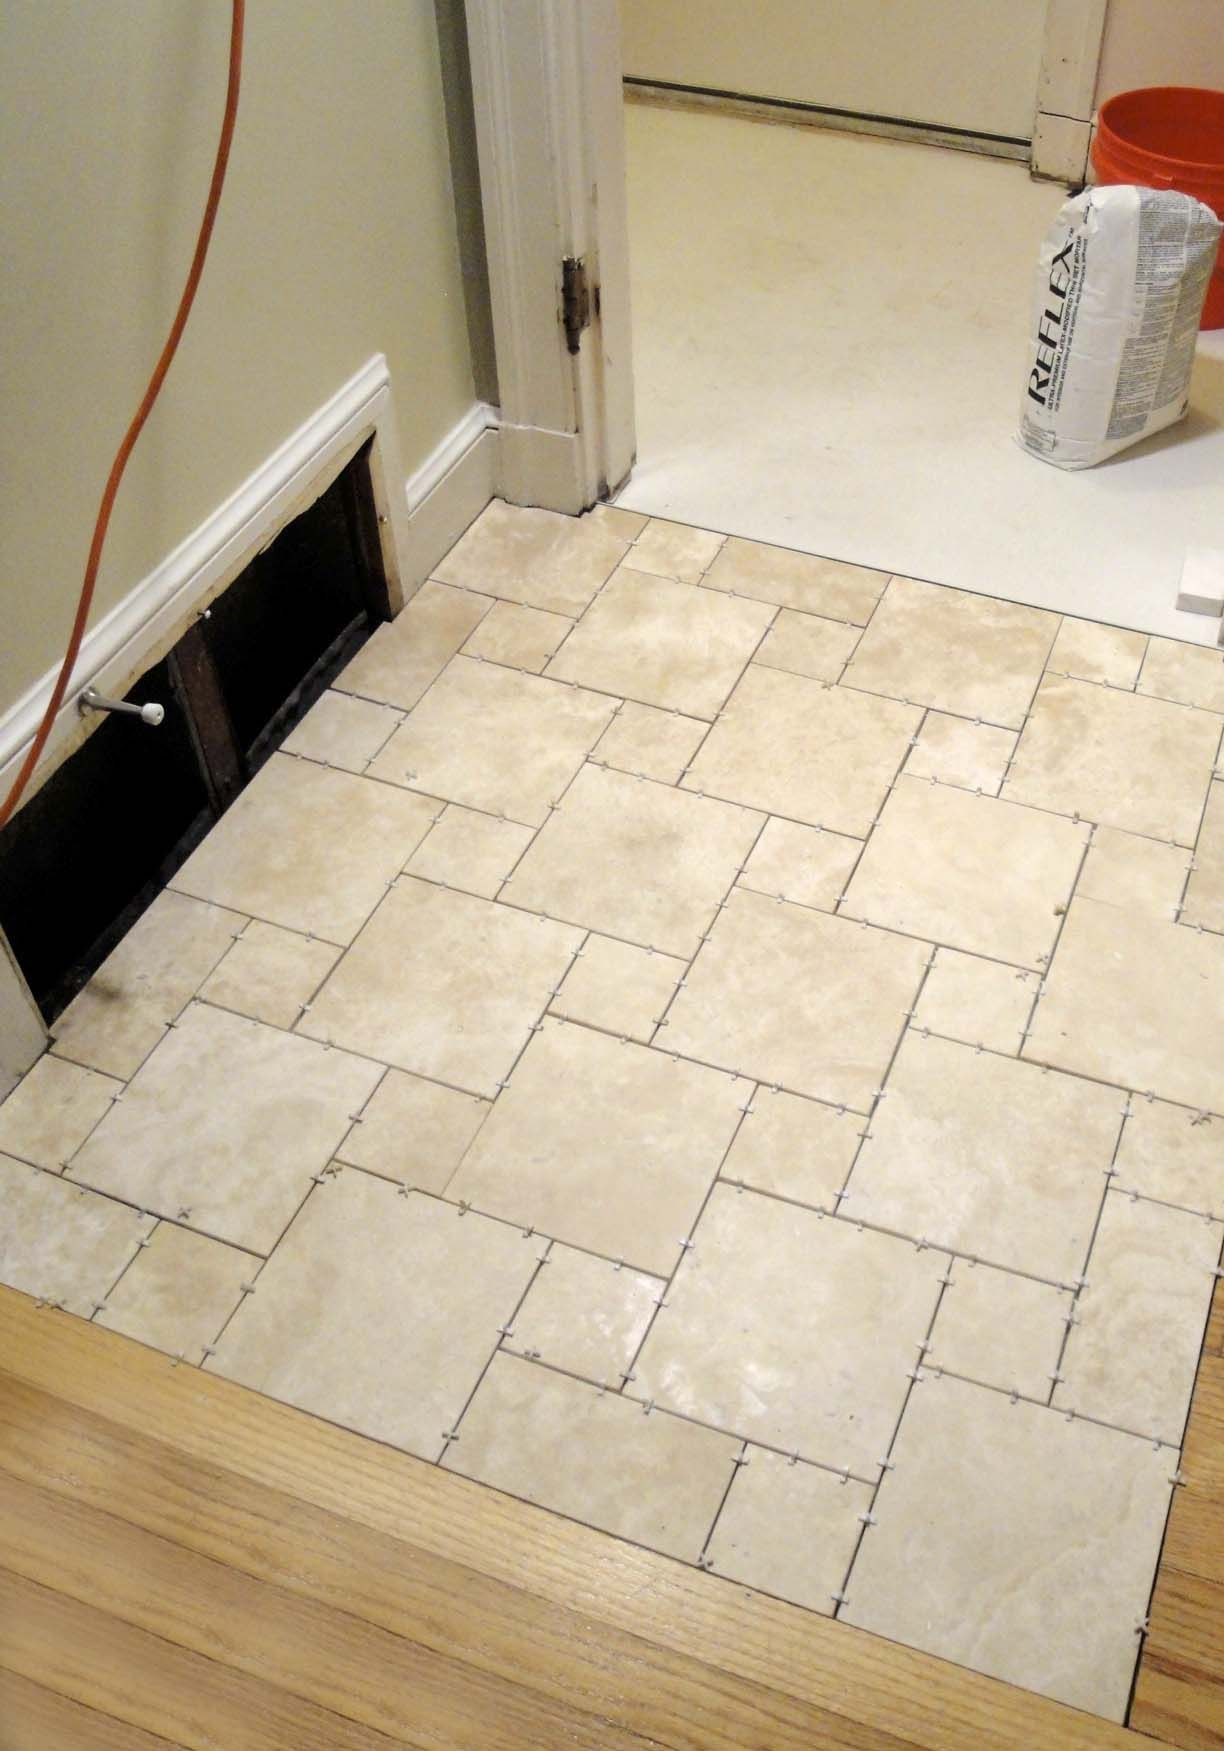 laying vinyl floor tiles in bathroom enjoyable travertine white porcelain bathroom floor tile 25586 | 5ae6f80be32c4977b65bcef2815362bc